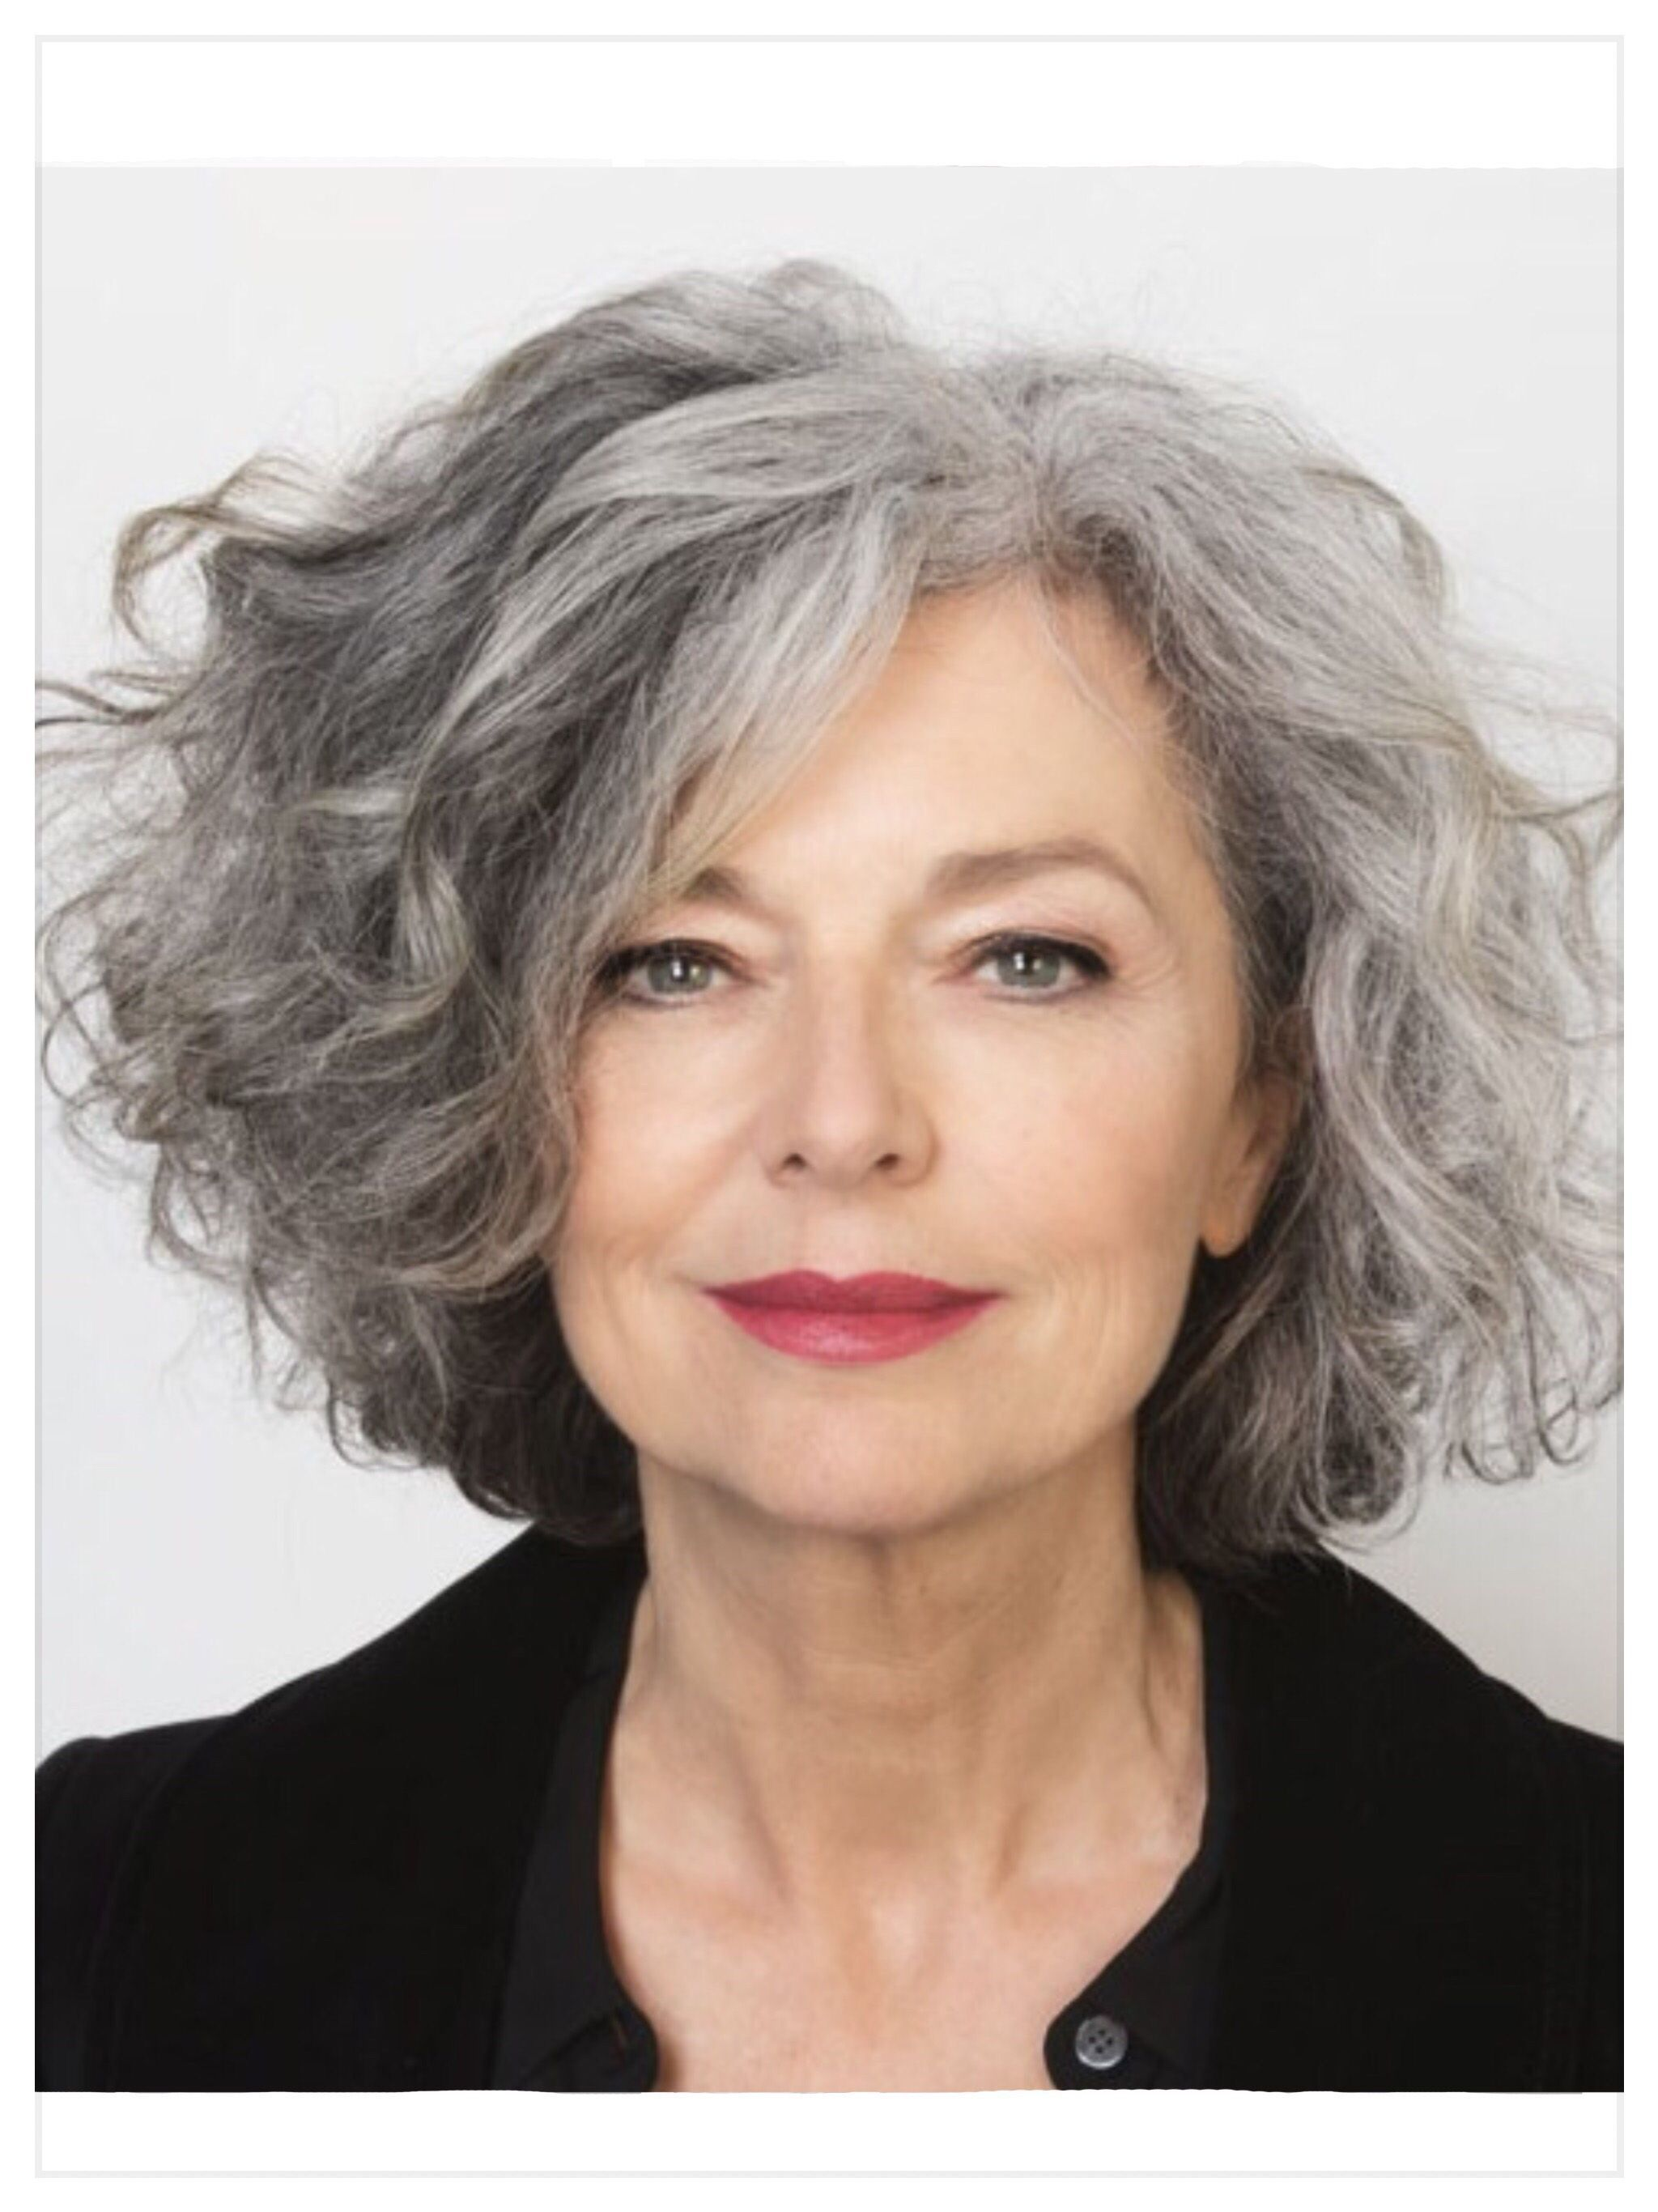 Curly Grey Hairstyles Everyday Pinlizzyosf On Silver Foxes